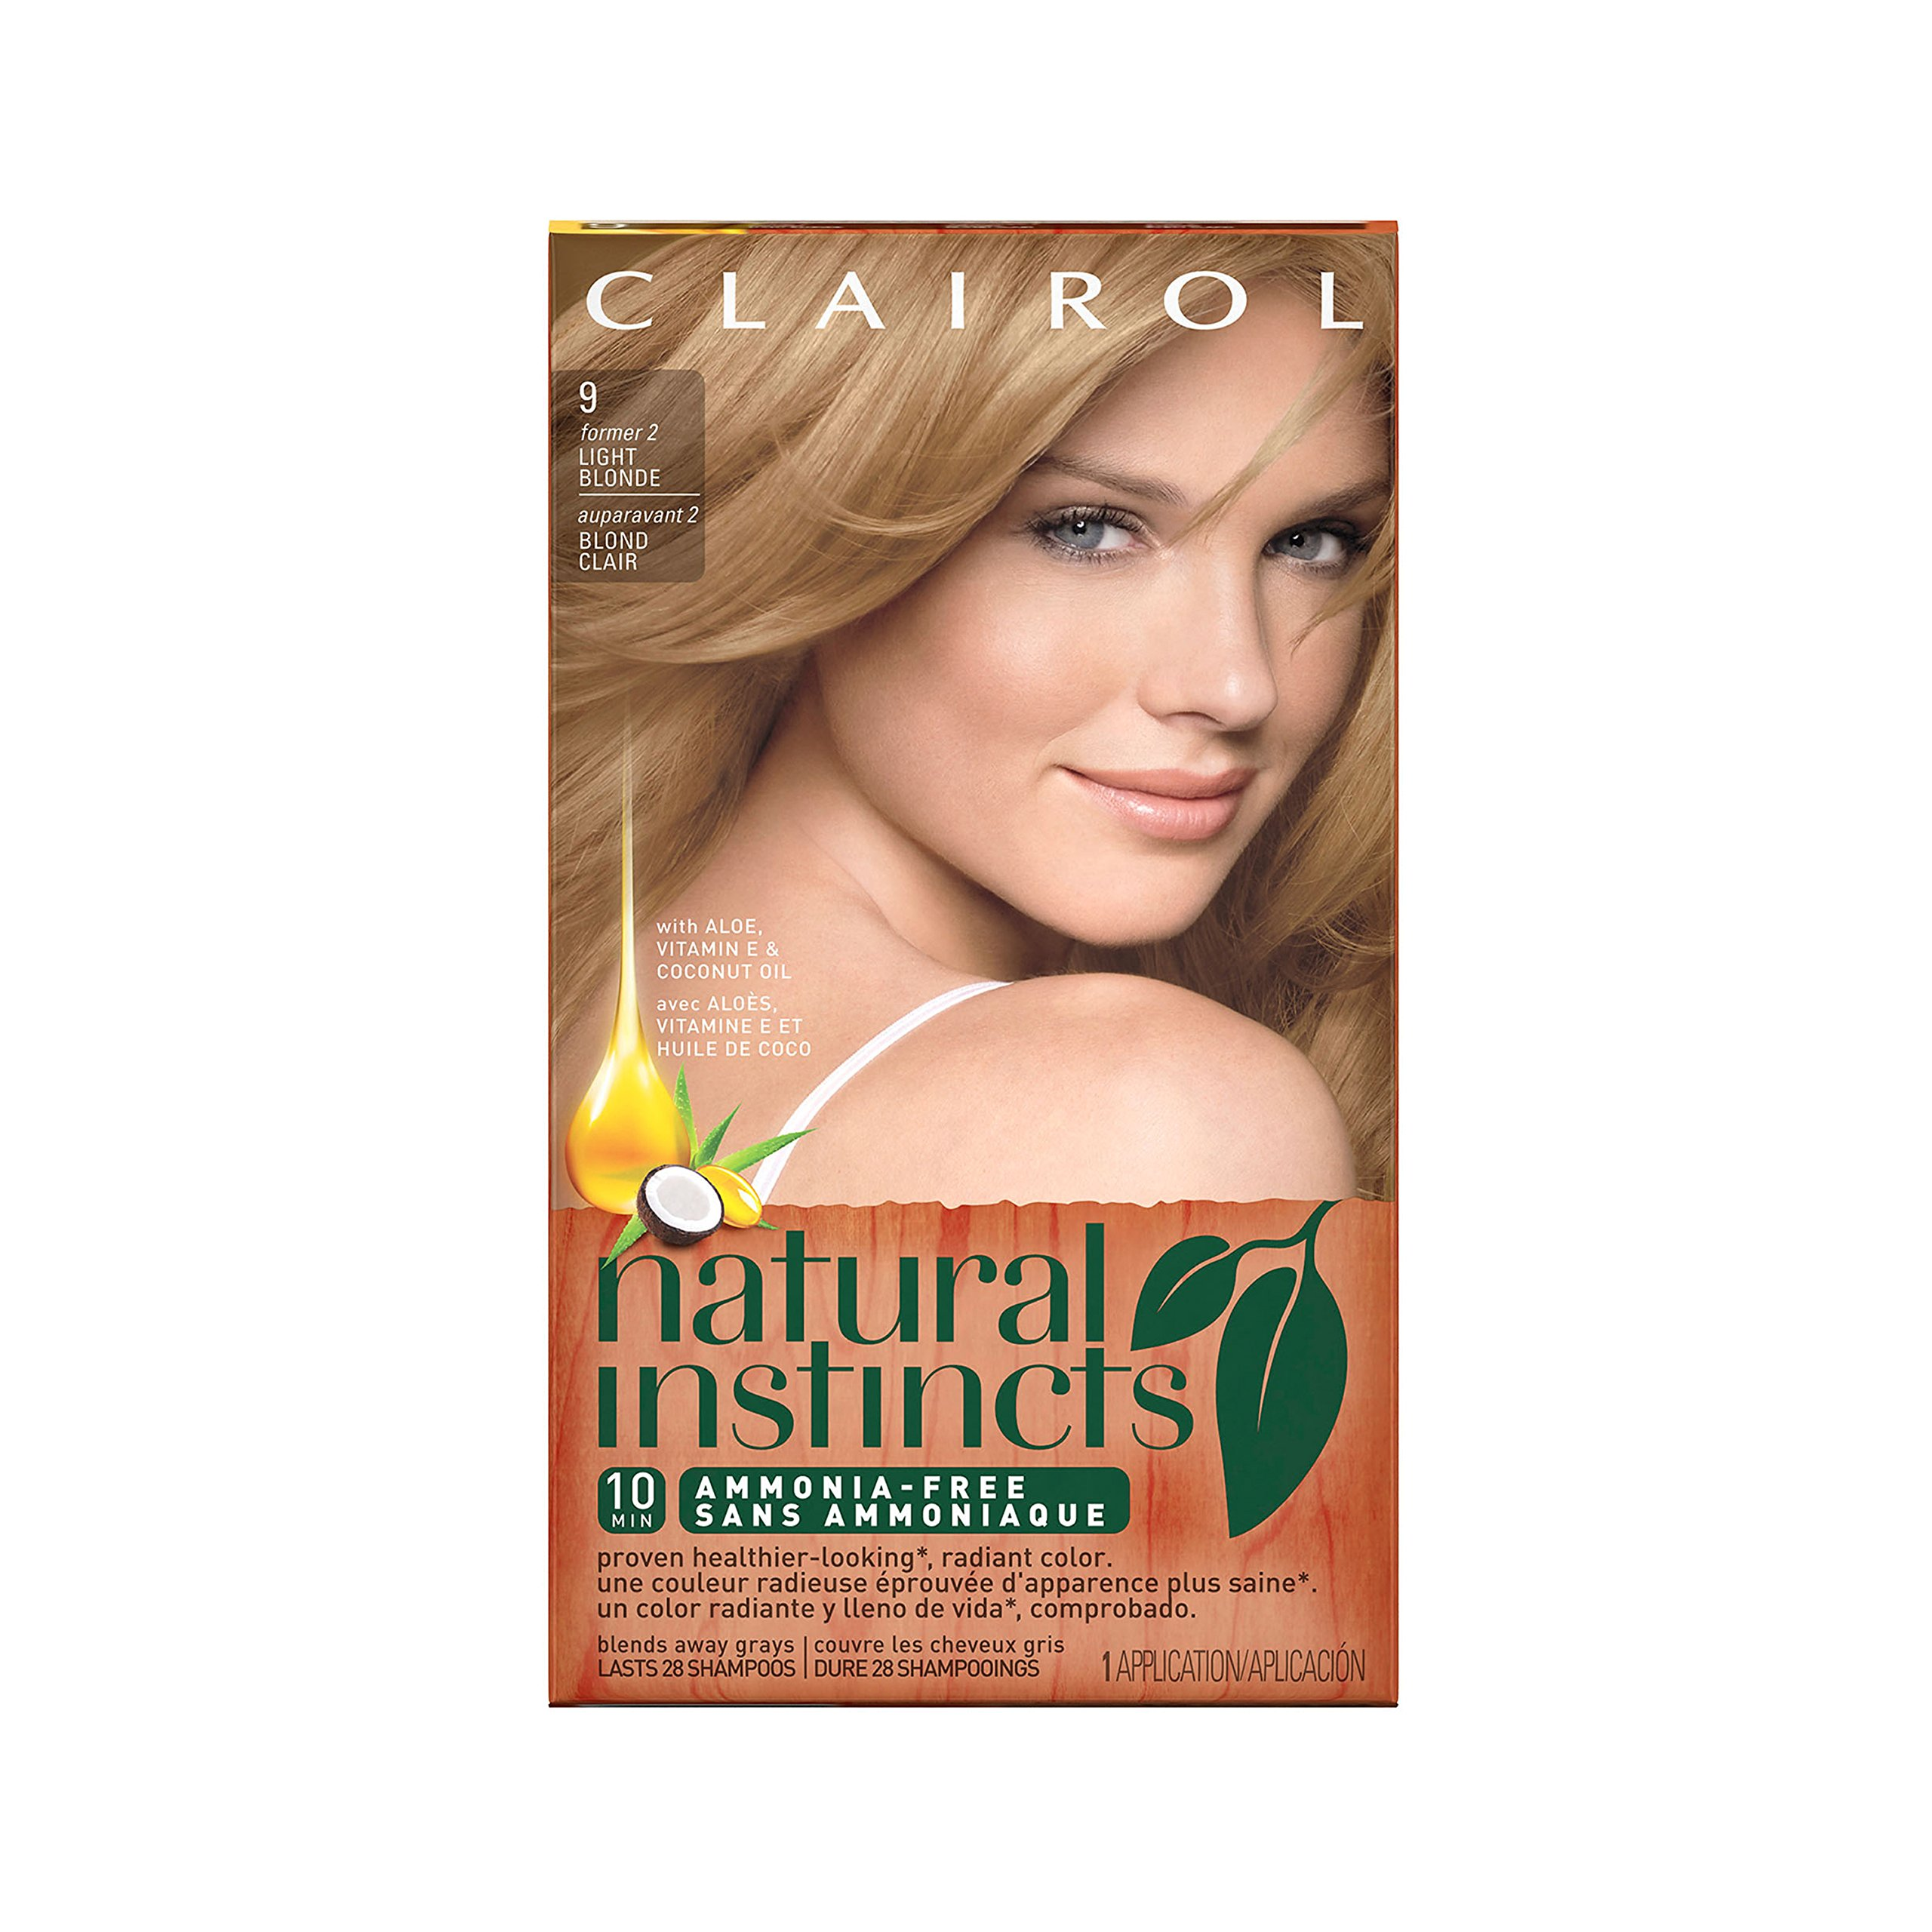 Clairol Natural Instincts Semi-Permanent Hair Color Kit (Pack of 3), 9 / 2 Sahara Light Blonde Color, Ammonia Free, Lasting for 28 Shampoos